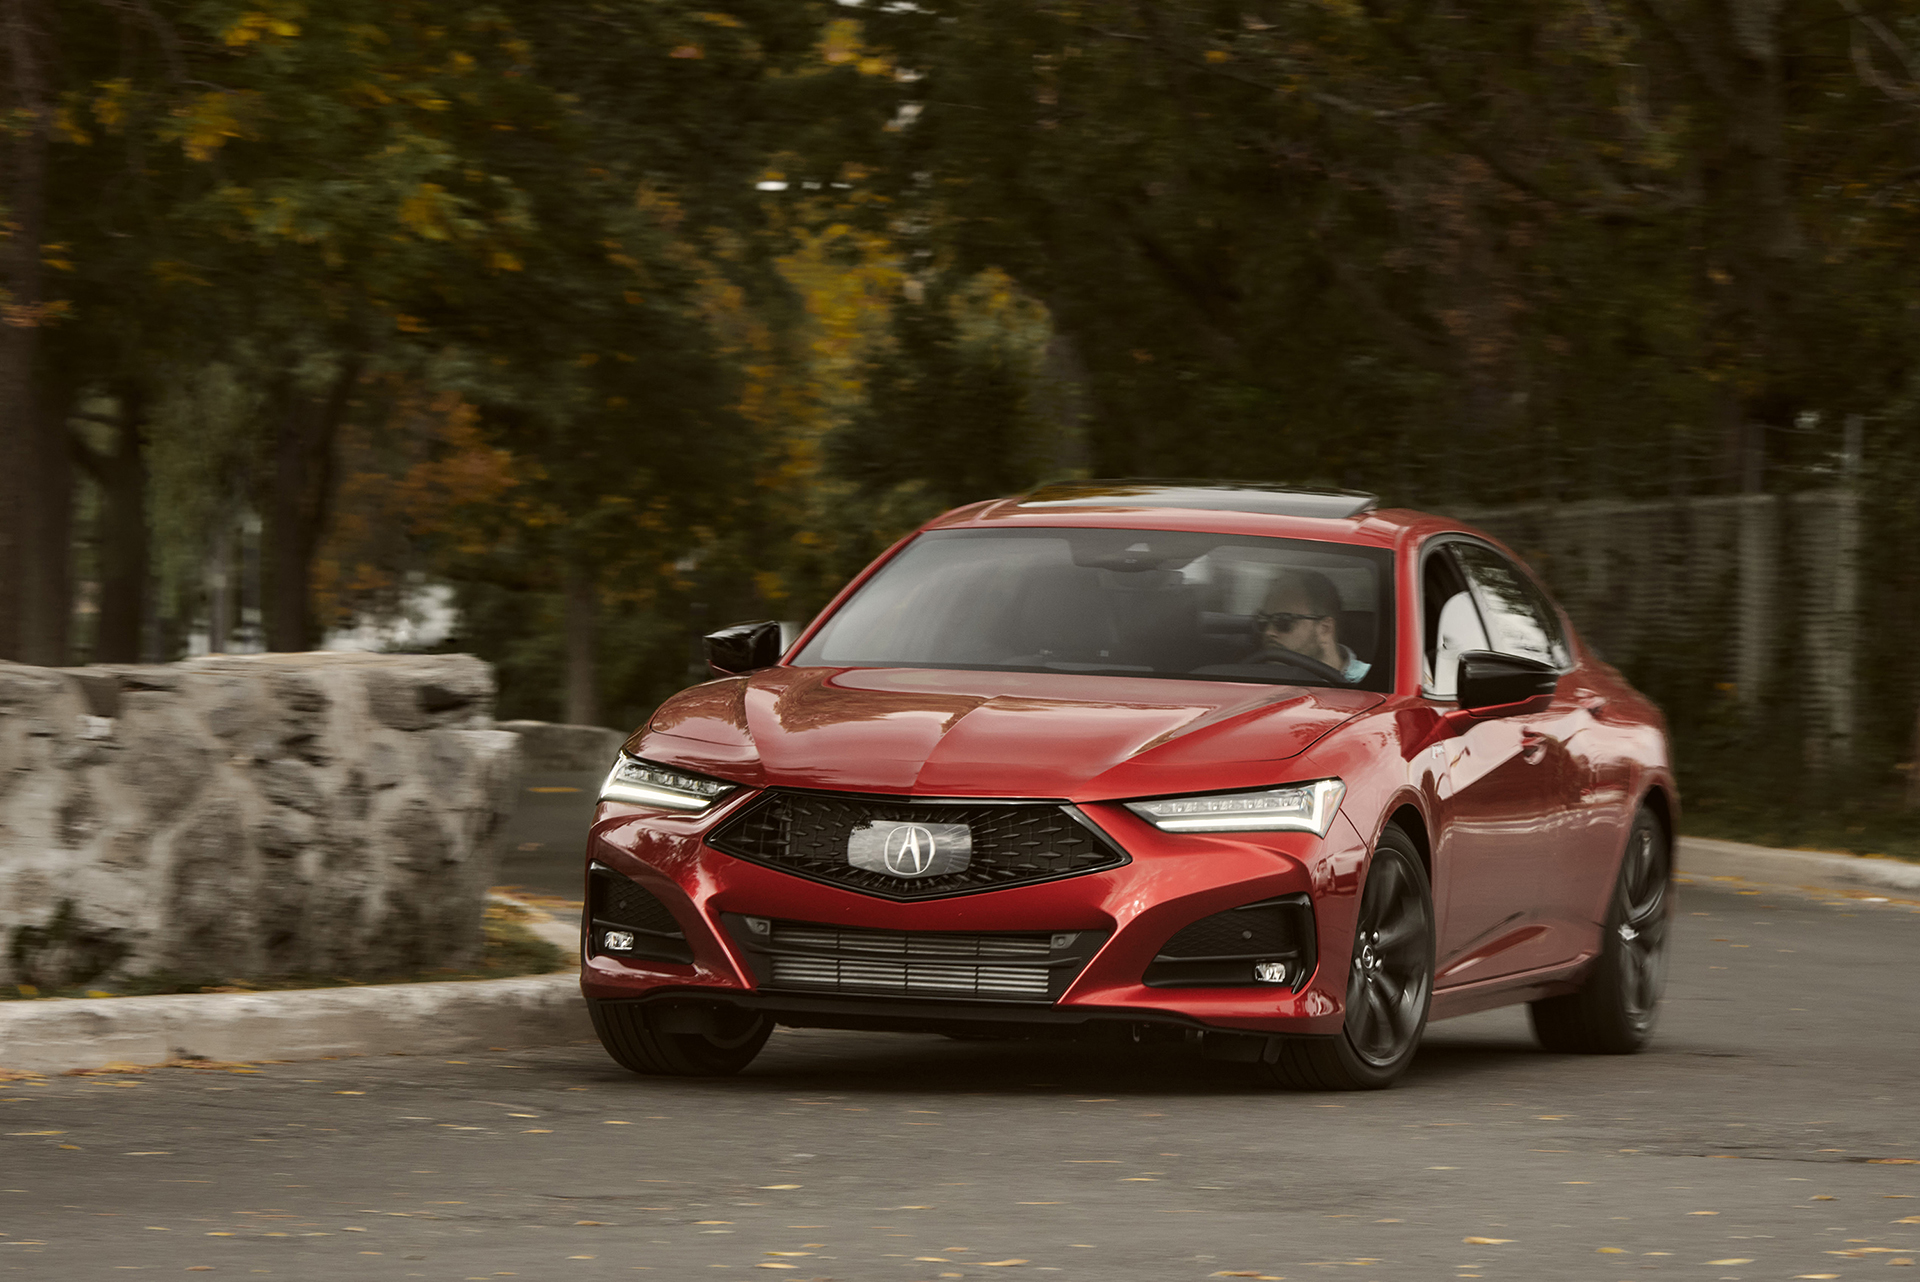 2021 acura tlx a-spec finally feels like the cool acuras